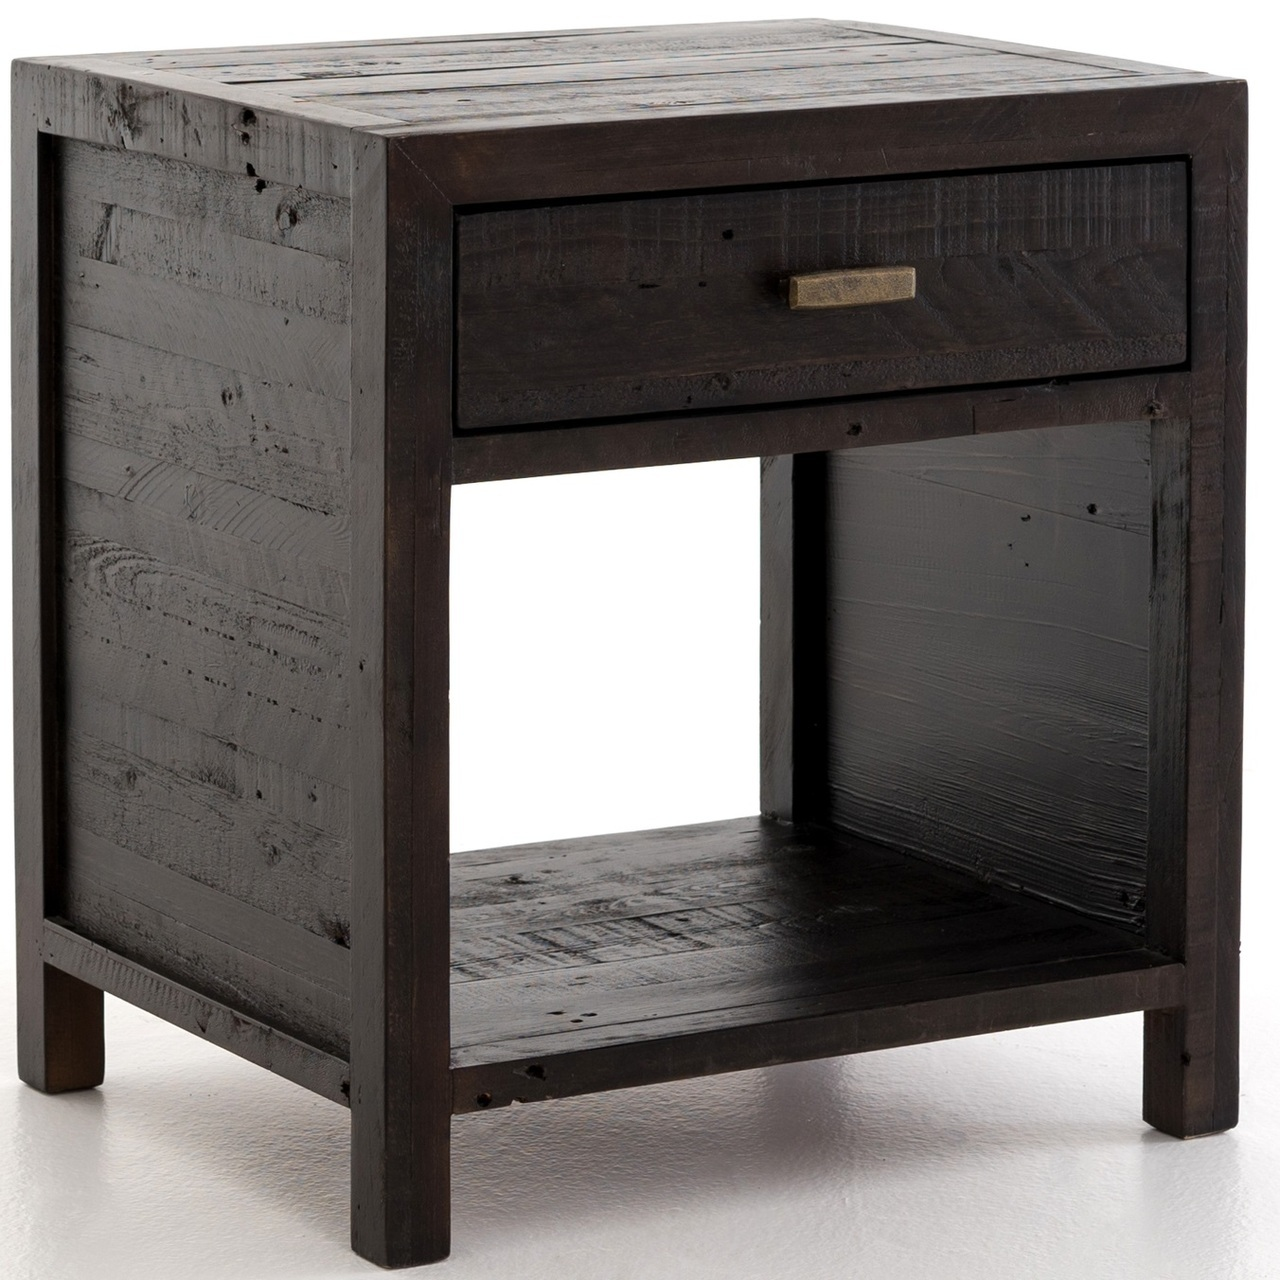 caminito dark carbon reclaimed wood end table zin home vcna prm rustic tables townsend coffee measurements distressed corner seating arrangement for small living room make your